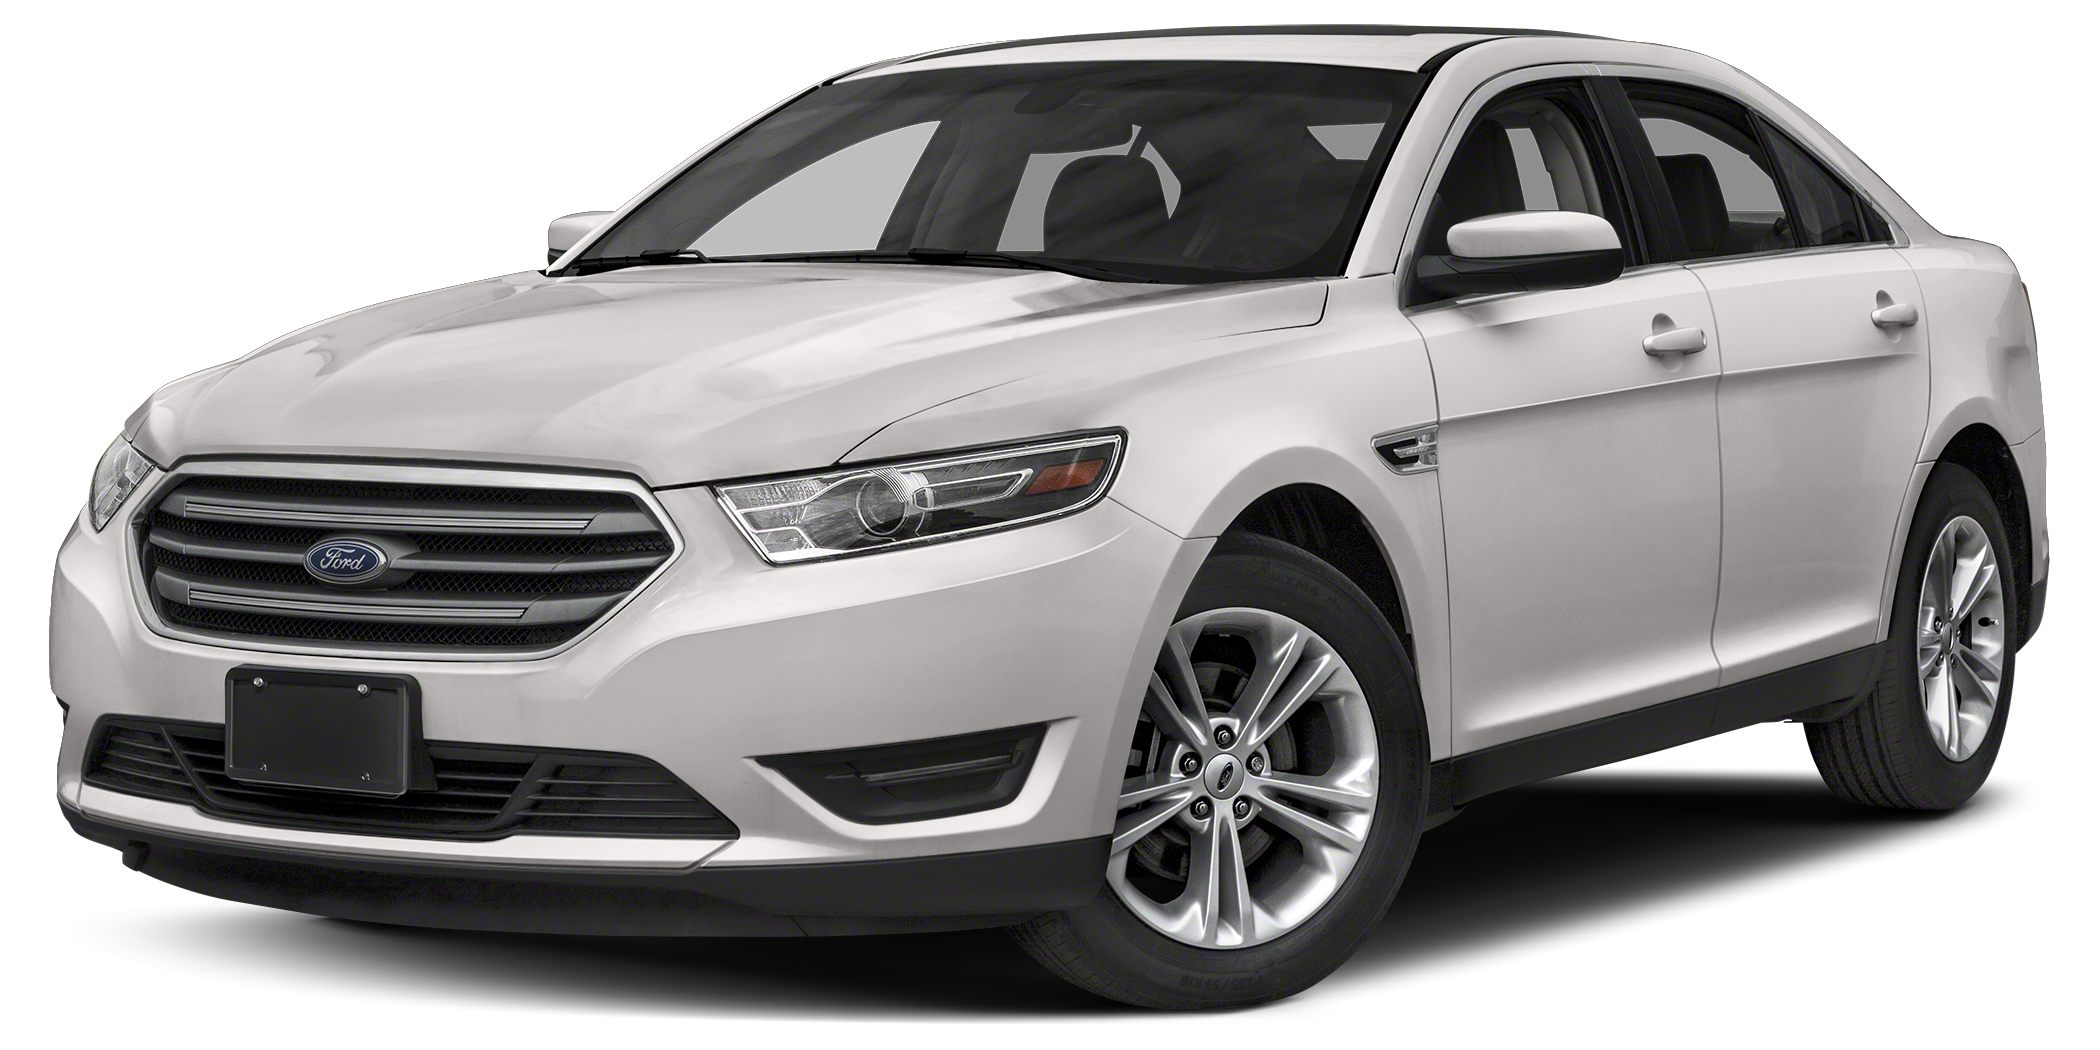 2018 Ford Taurus Limited 2018 Ford Taurus Limited 2718 HighwayCity MPG Price includes 1000 -